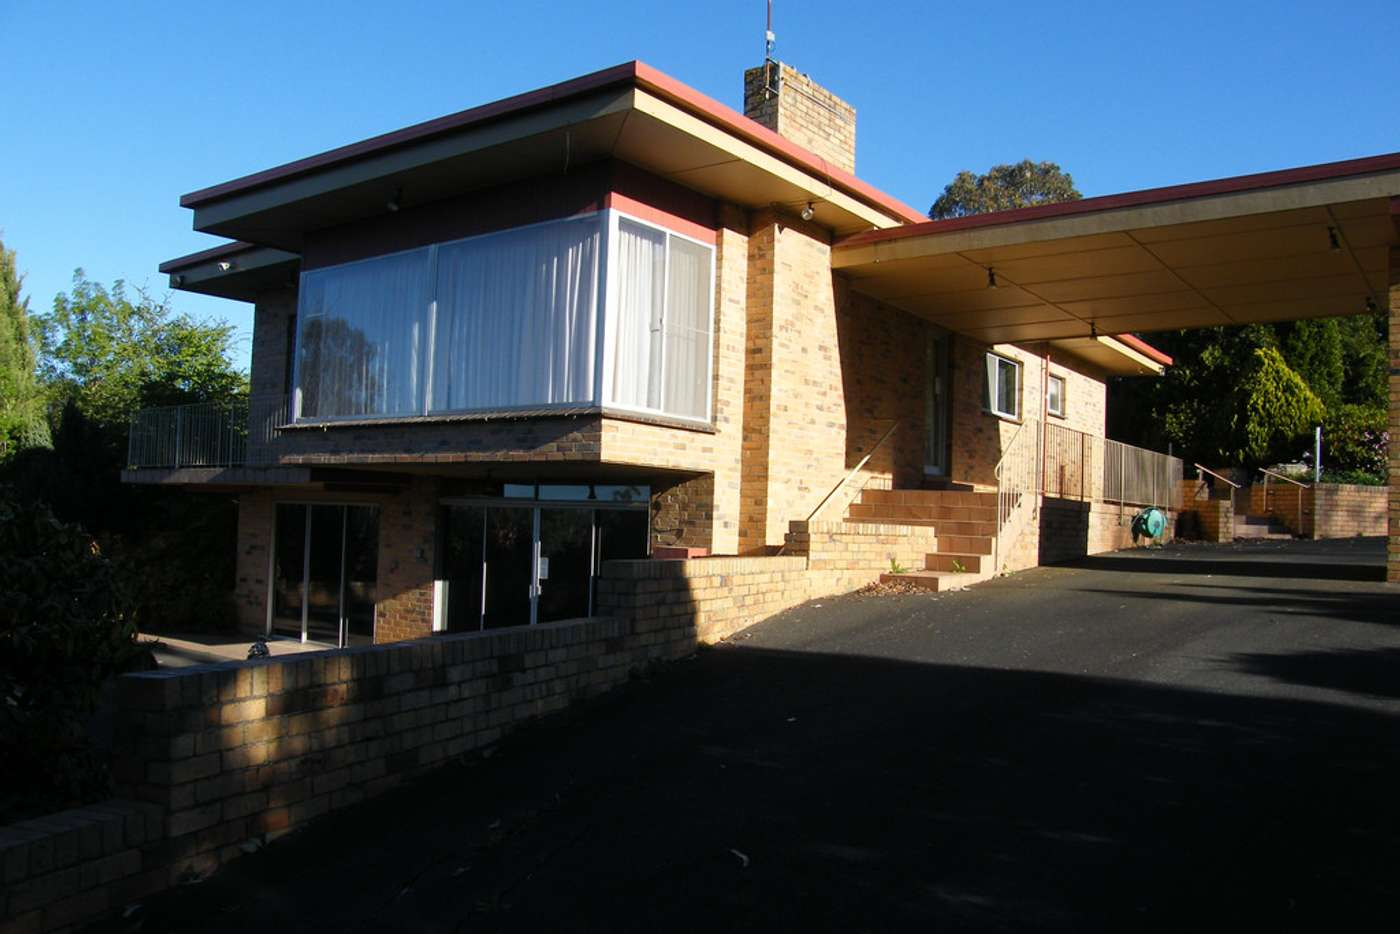 Main view of Homely house listing, 75 Station Road, Gisborne VIC 3437